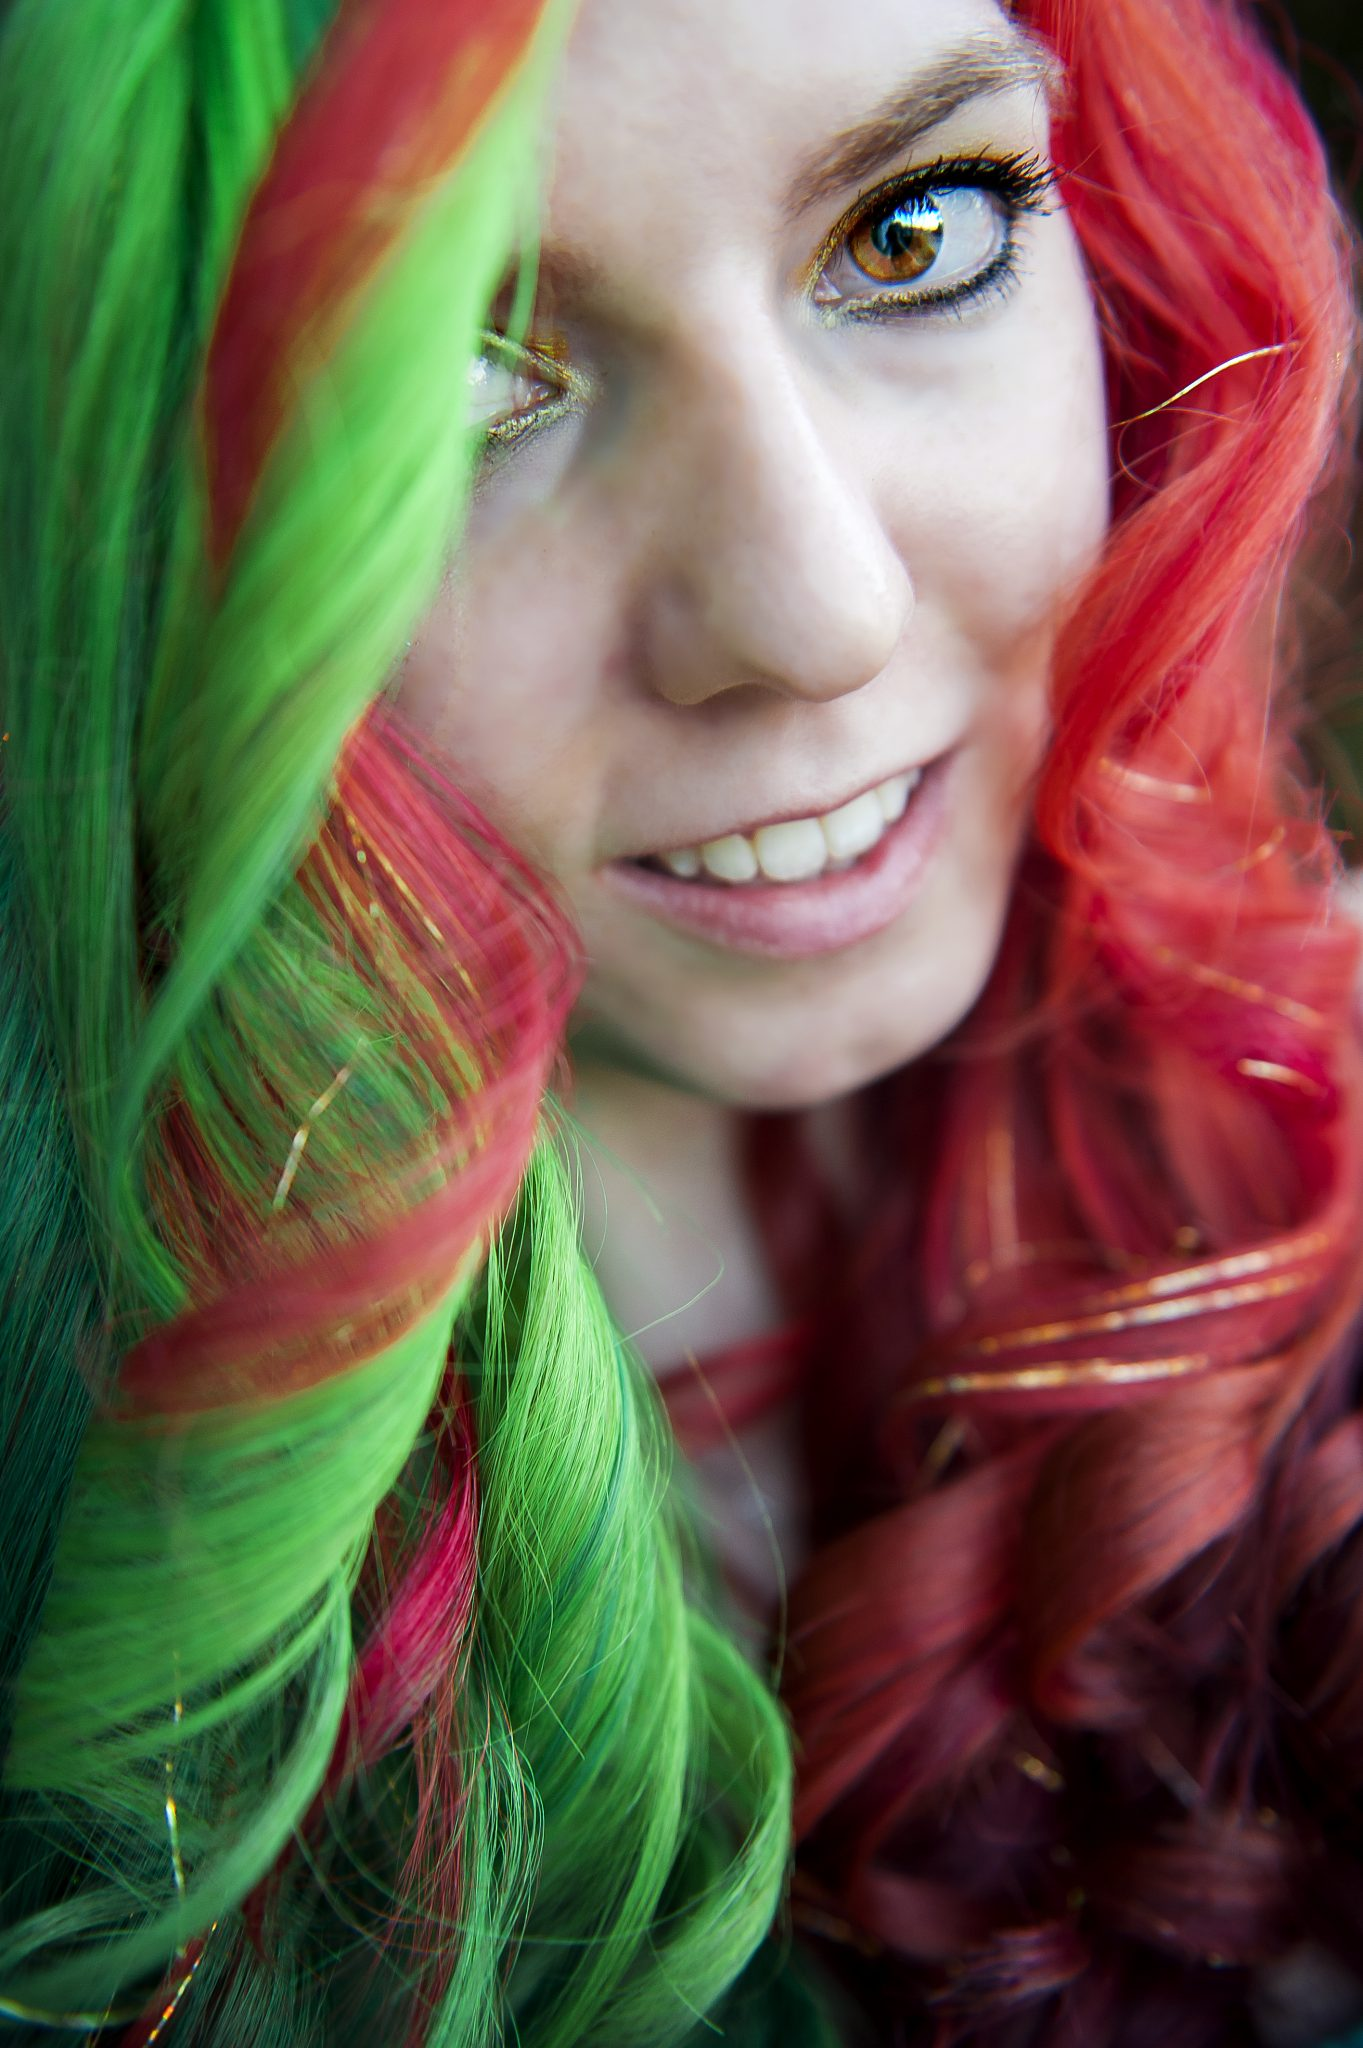 curled half green and half red hair dyed for christmas with gold tinsel